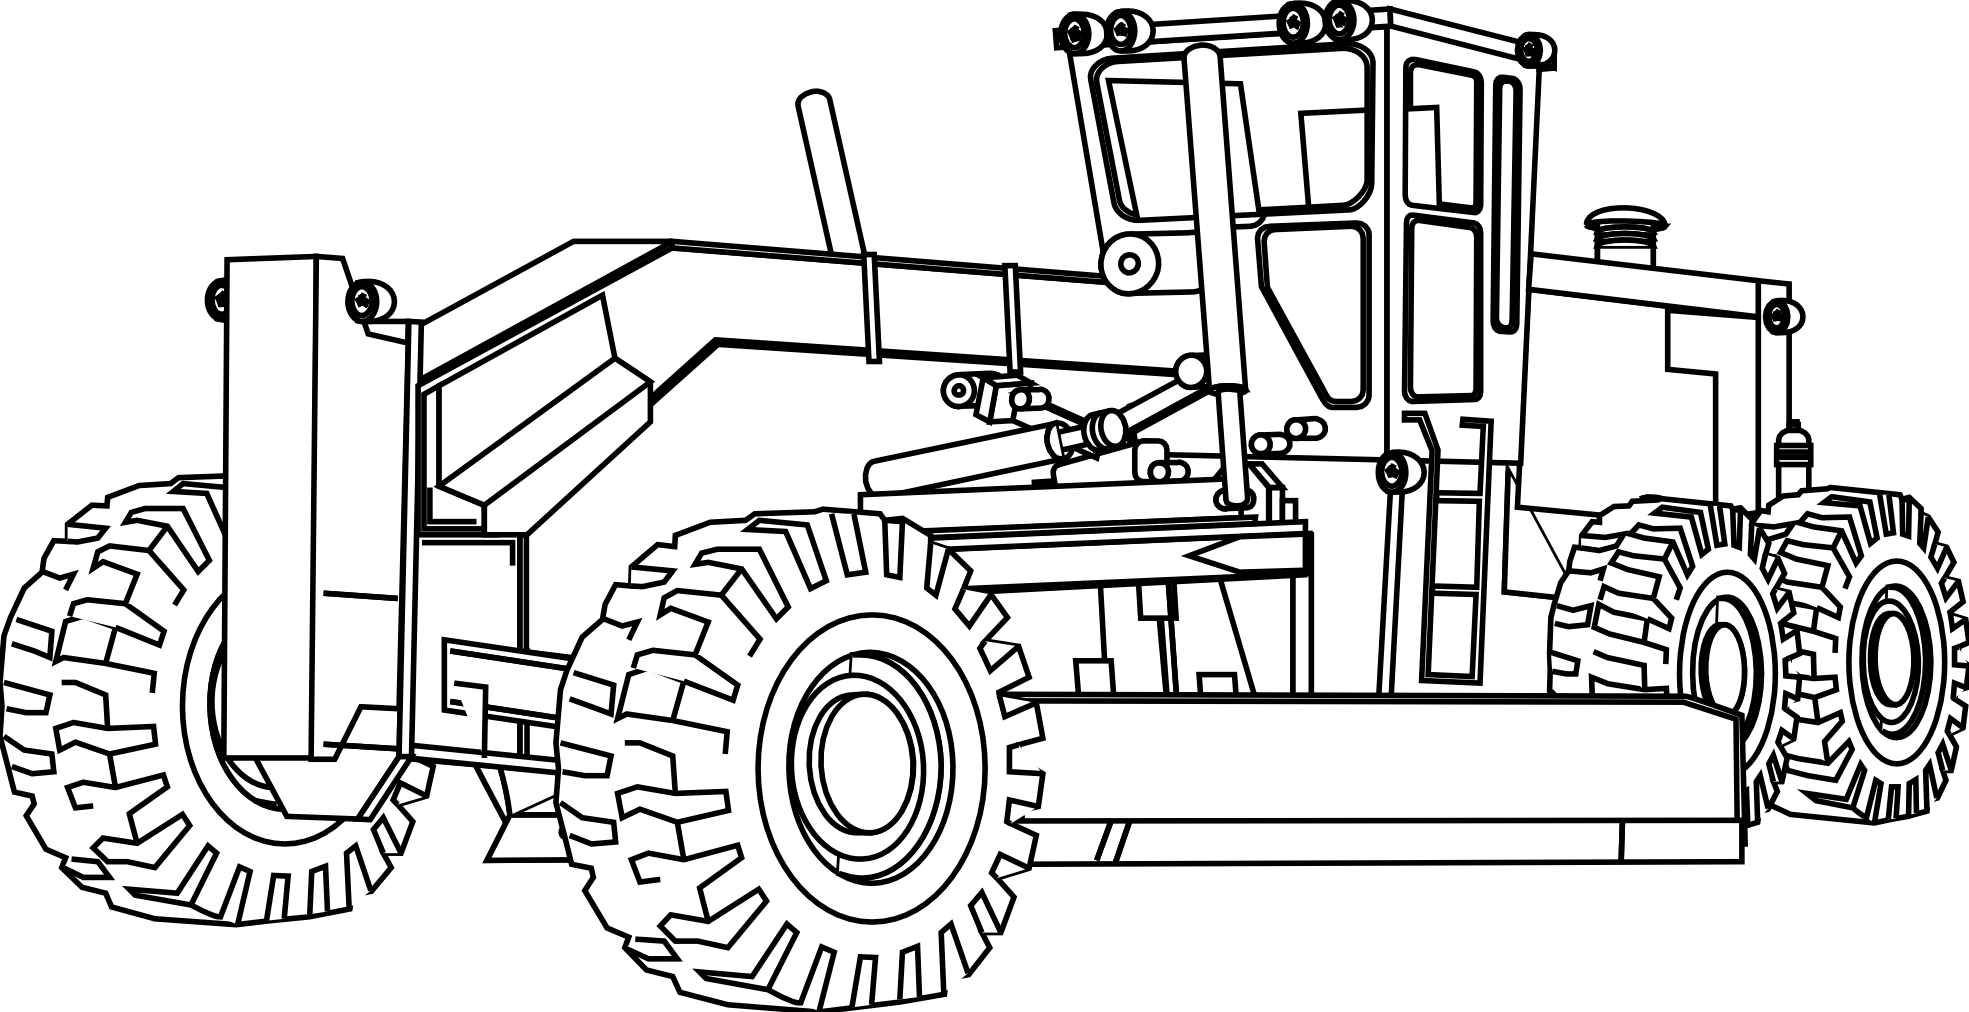 caterpillar machine coloring pages - photo#31